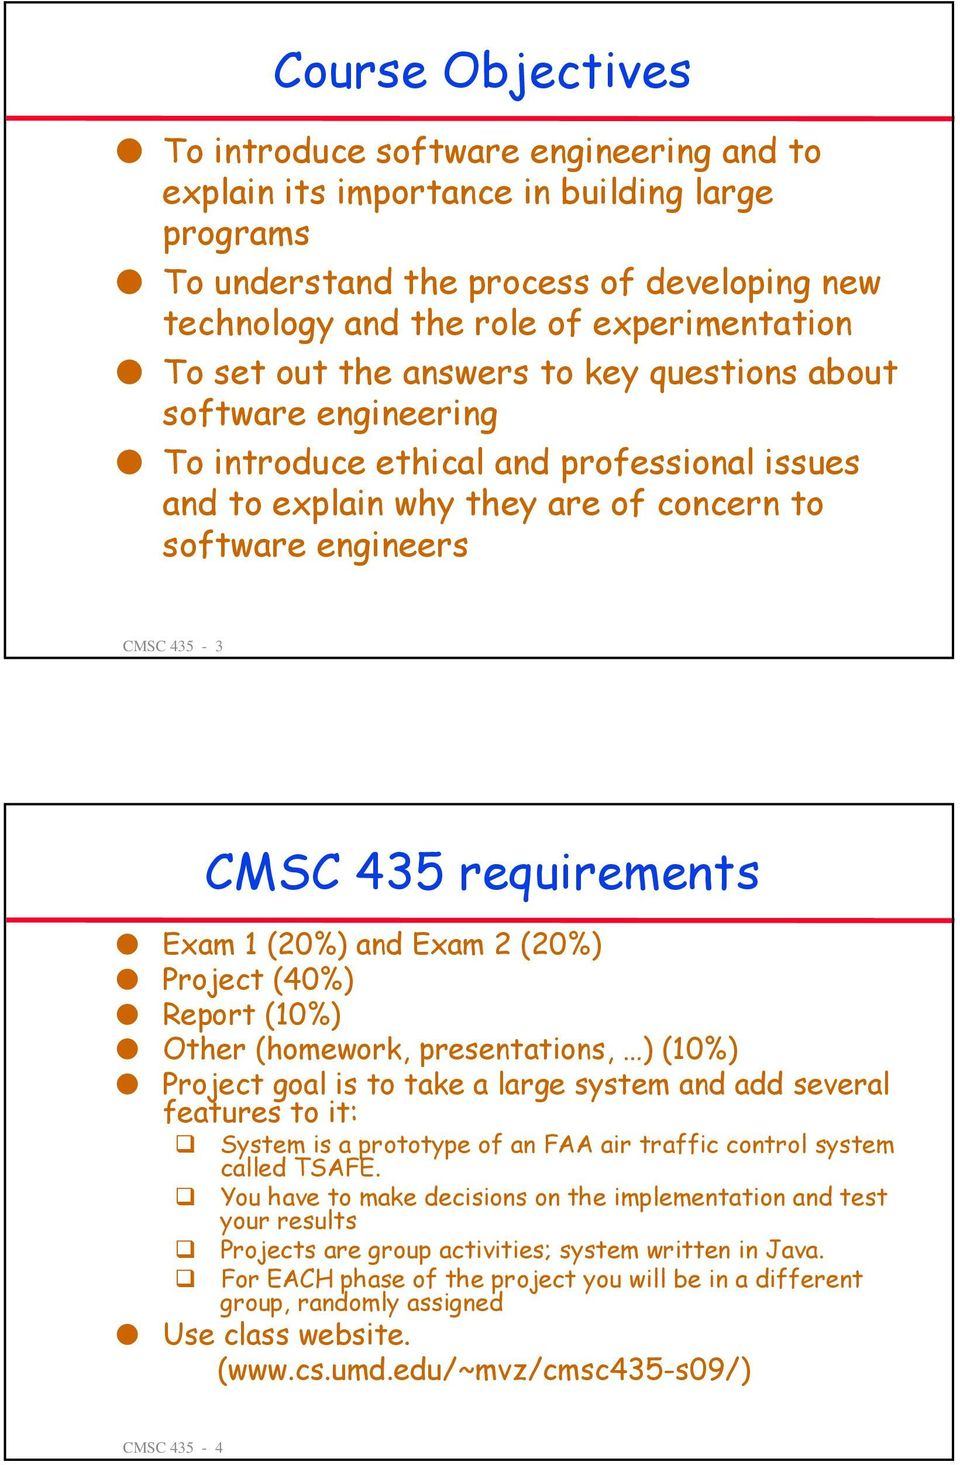 requirements Exam 1 (20%) and Exam 2 (20%) Project (40%) Report (10%) Other (homework, presentations, ) (10%) Project goal is to take a large system and add several features to it: System is a